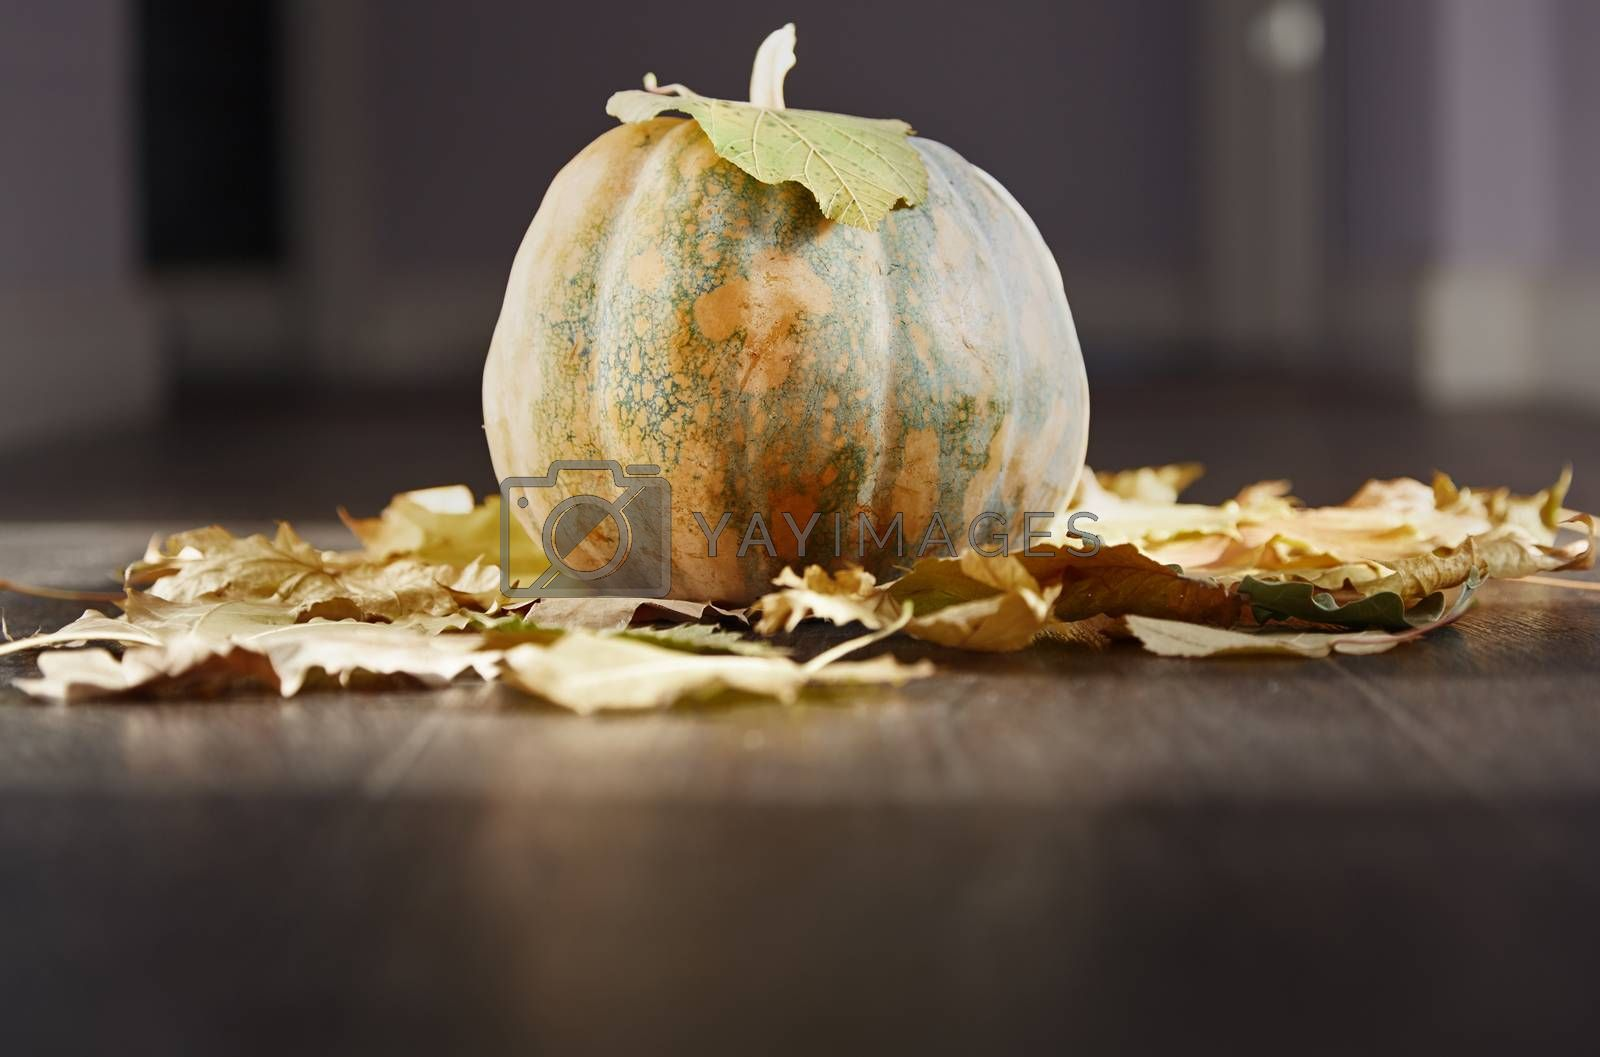 Halloween pumpkin at the hardwood floor with leave